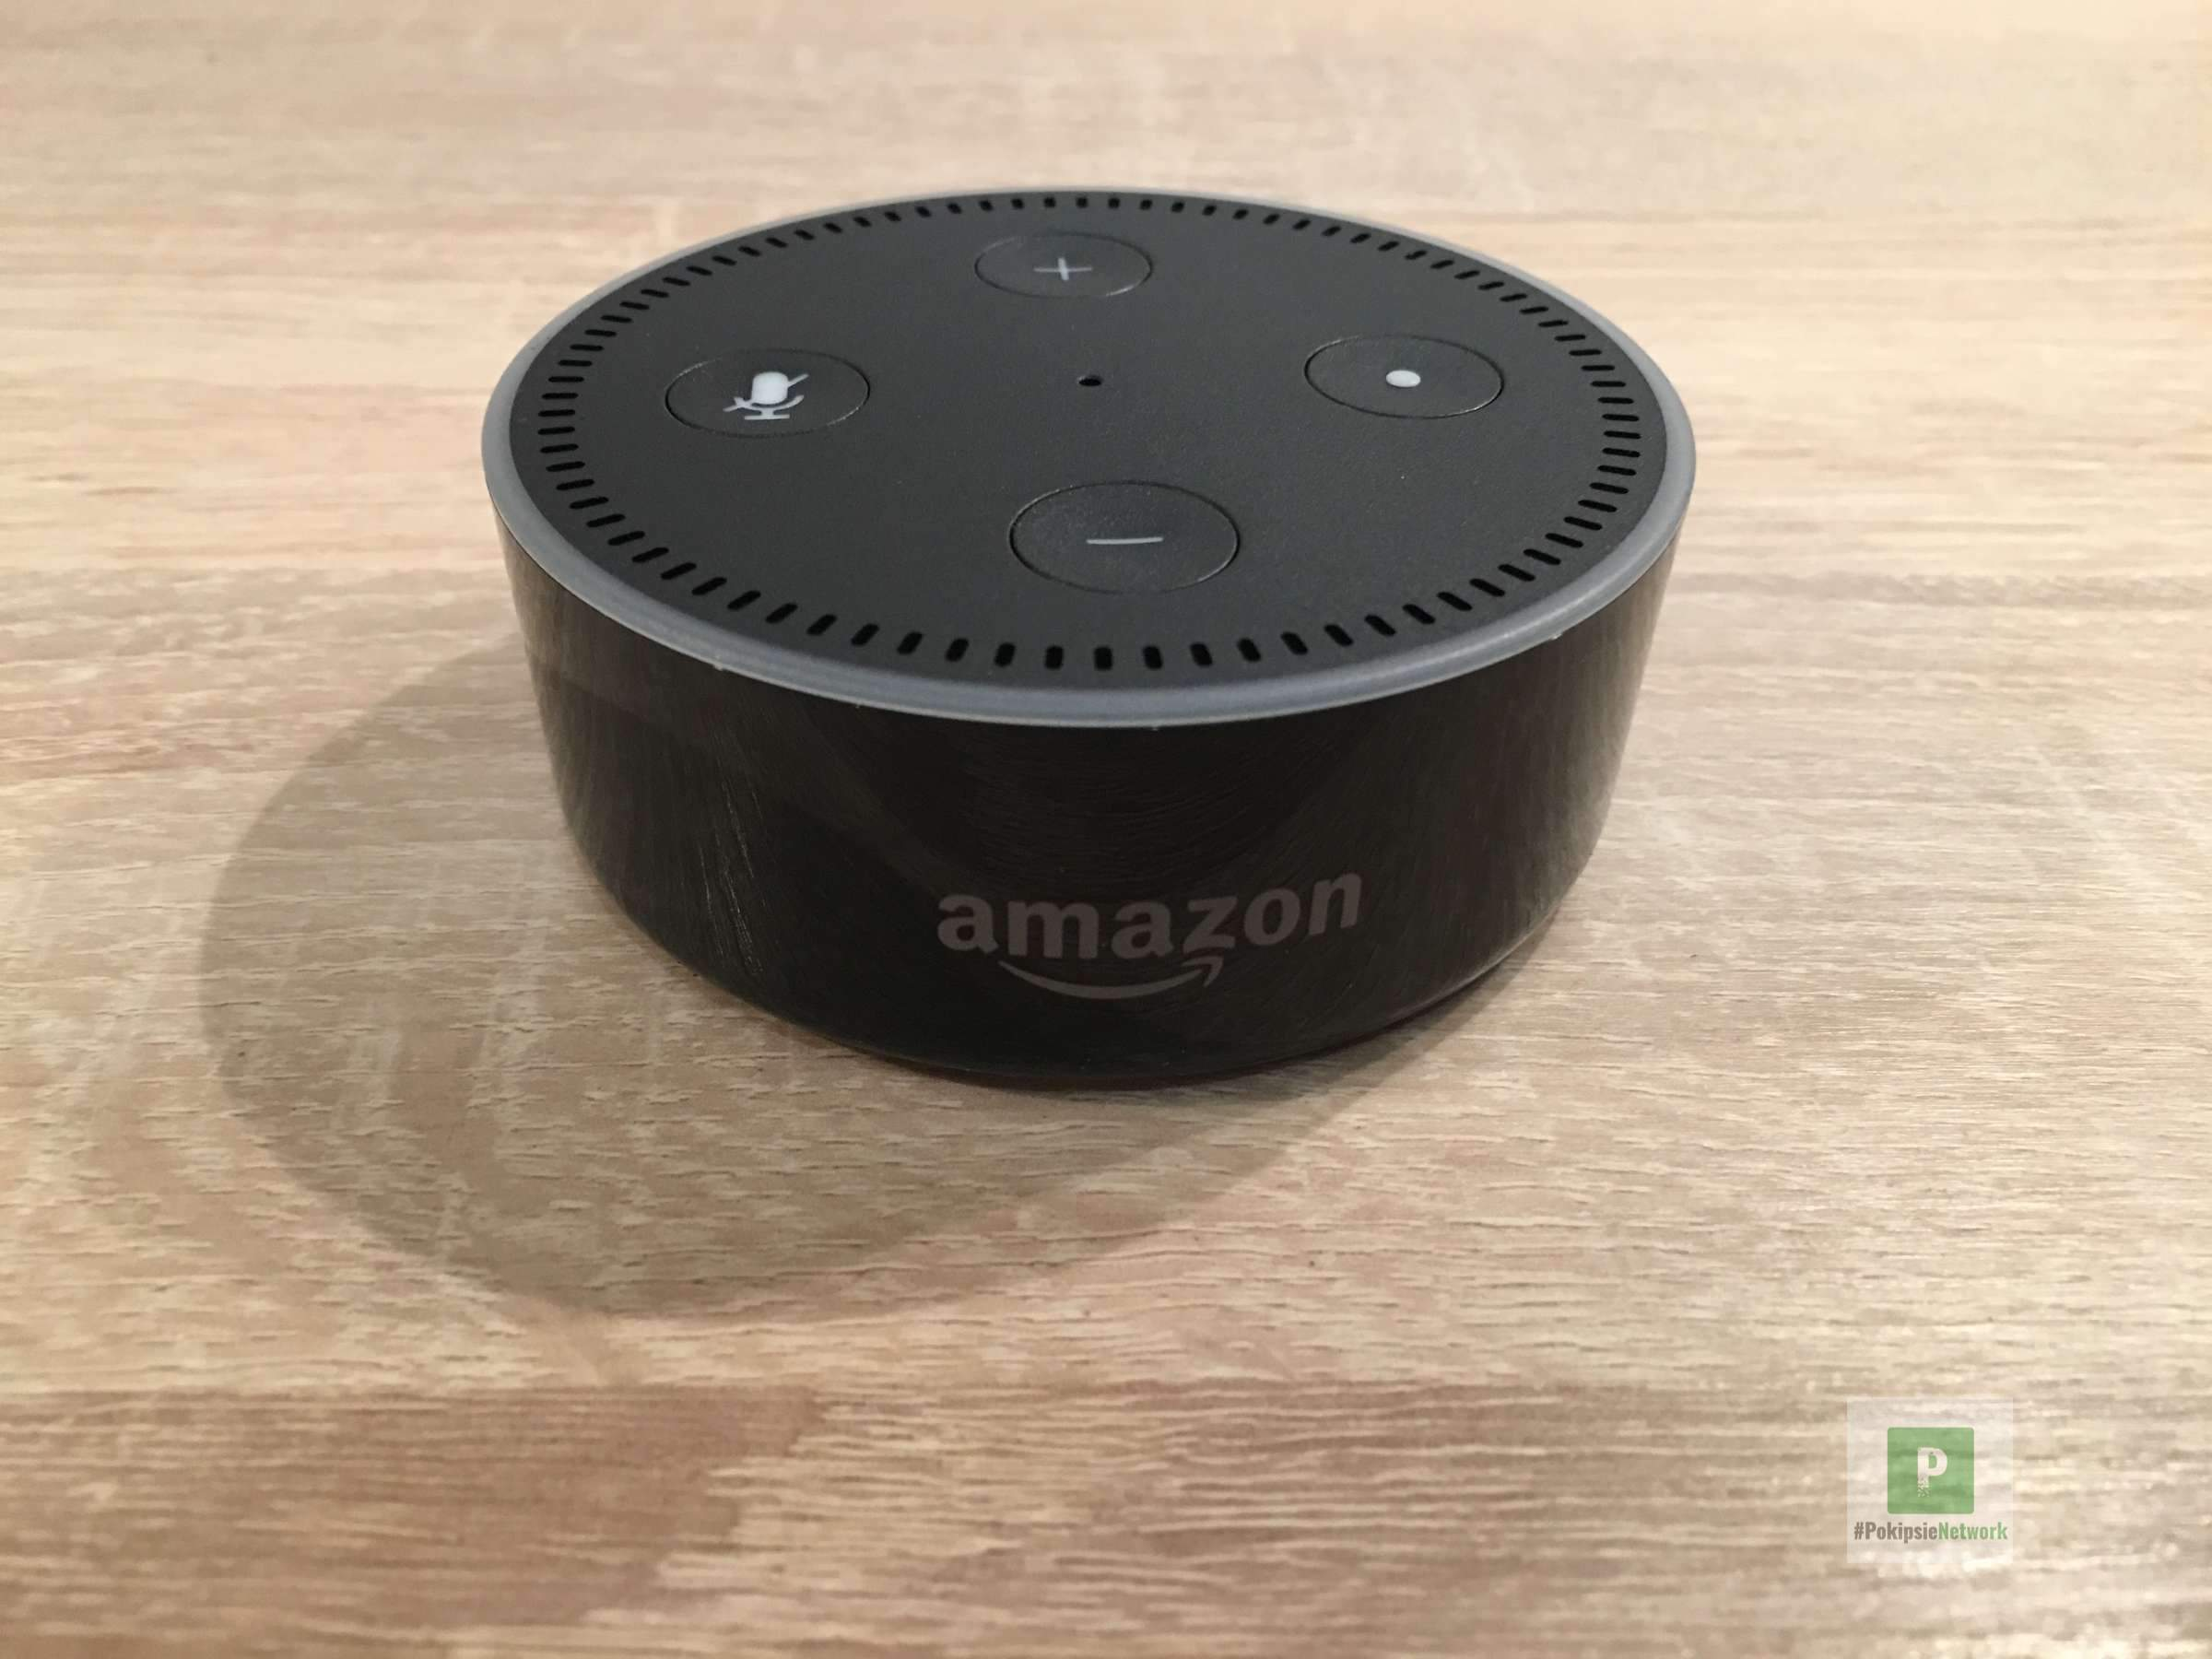 Amazon Echo Dot Testbericht